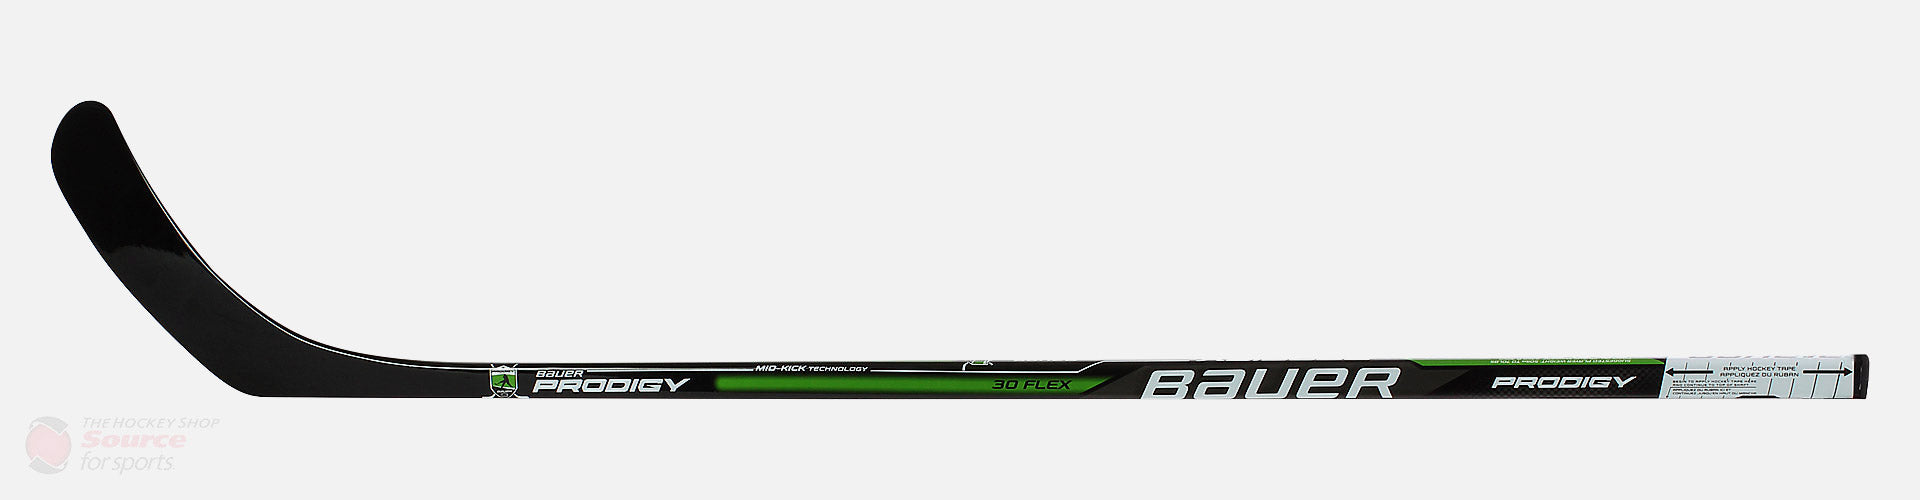 Bauer Prodigy Youth Hockey Stick - 42""